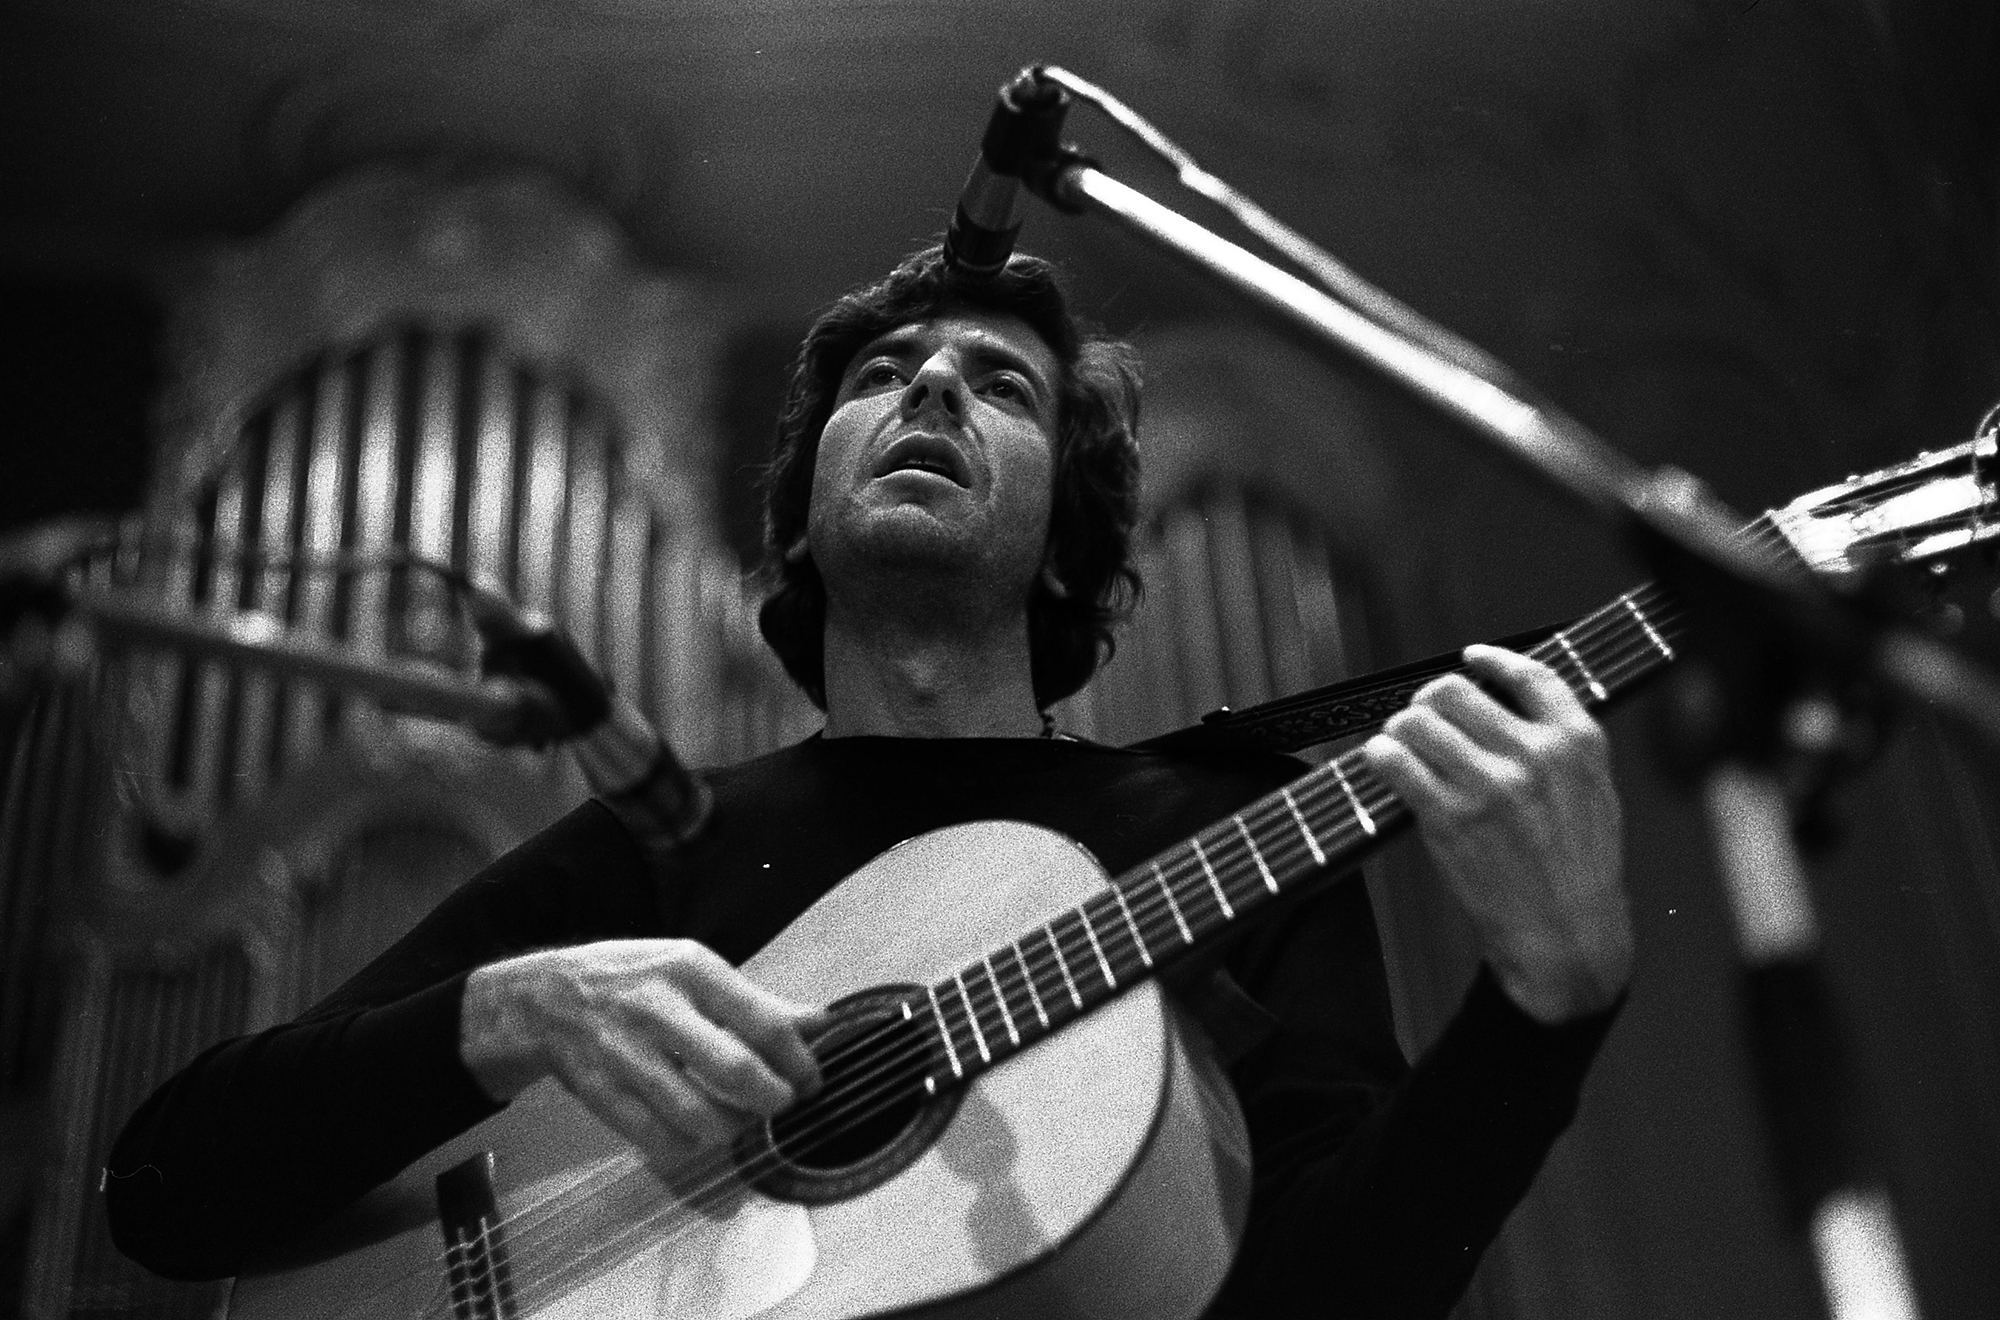 Leonard Cohen performs at the Musikhalle on May 4, 1970 in Hamburg, Germany.